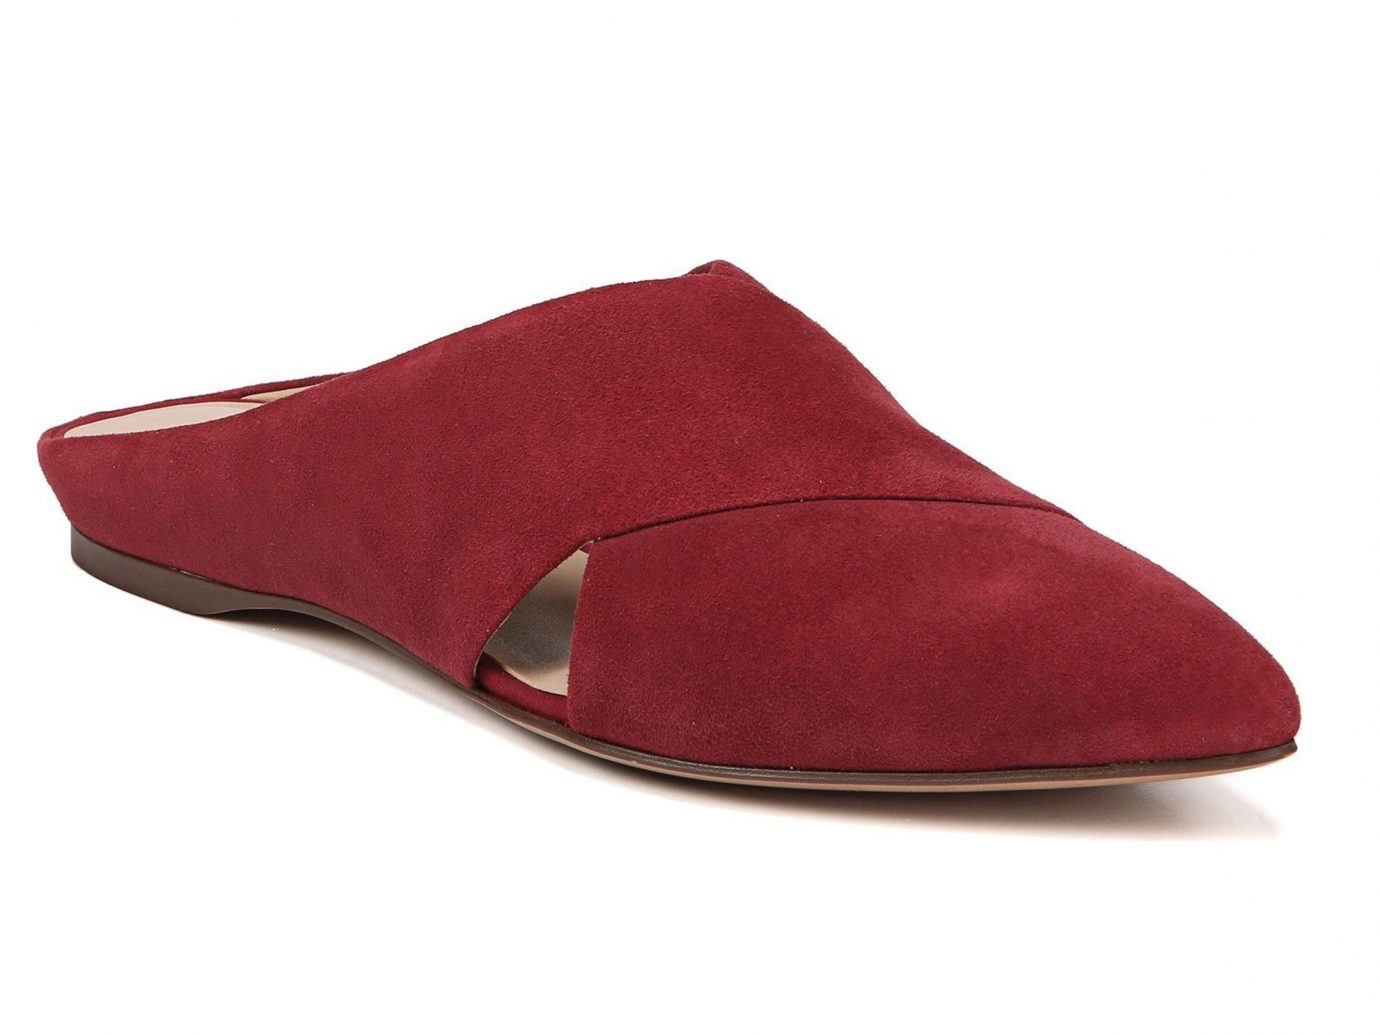 Style + Design Travel Shop red footwear shoe maroon suede outdoor shoe product leather product design walking shoe magenta